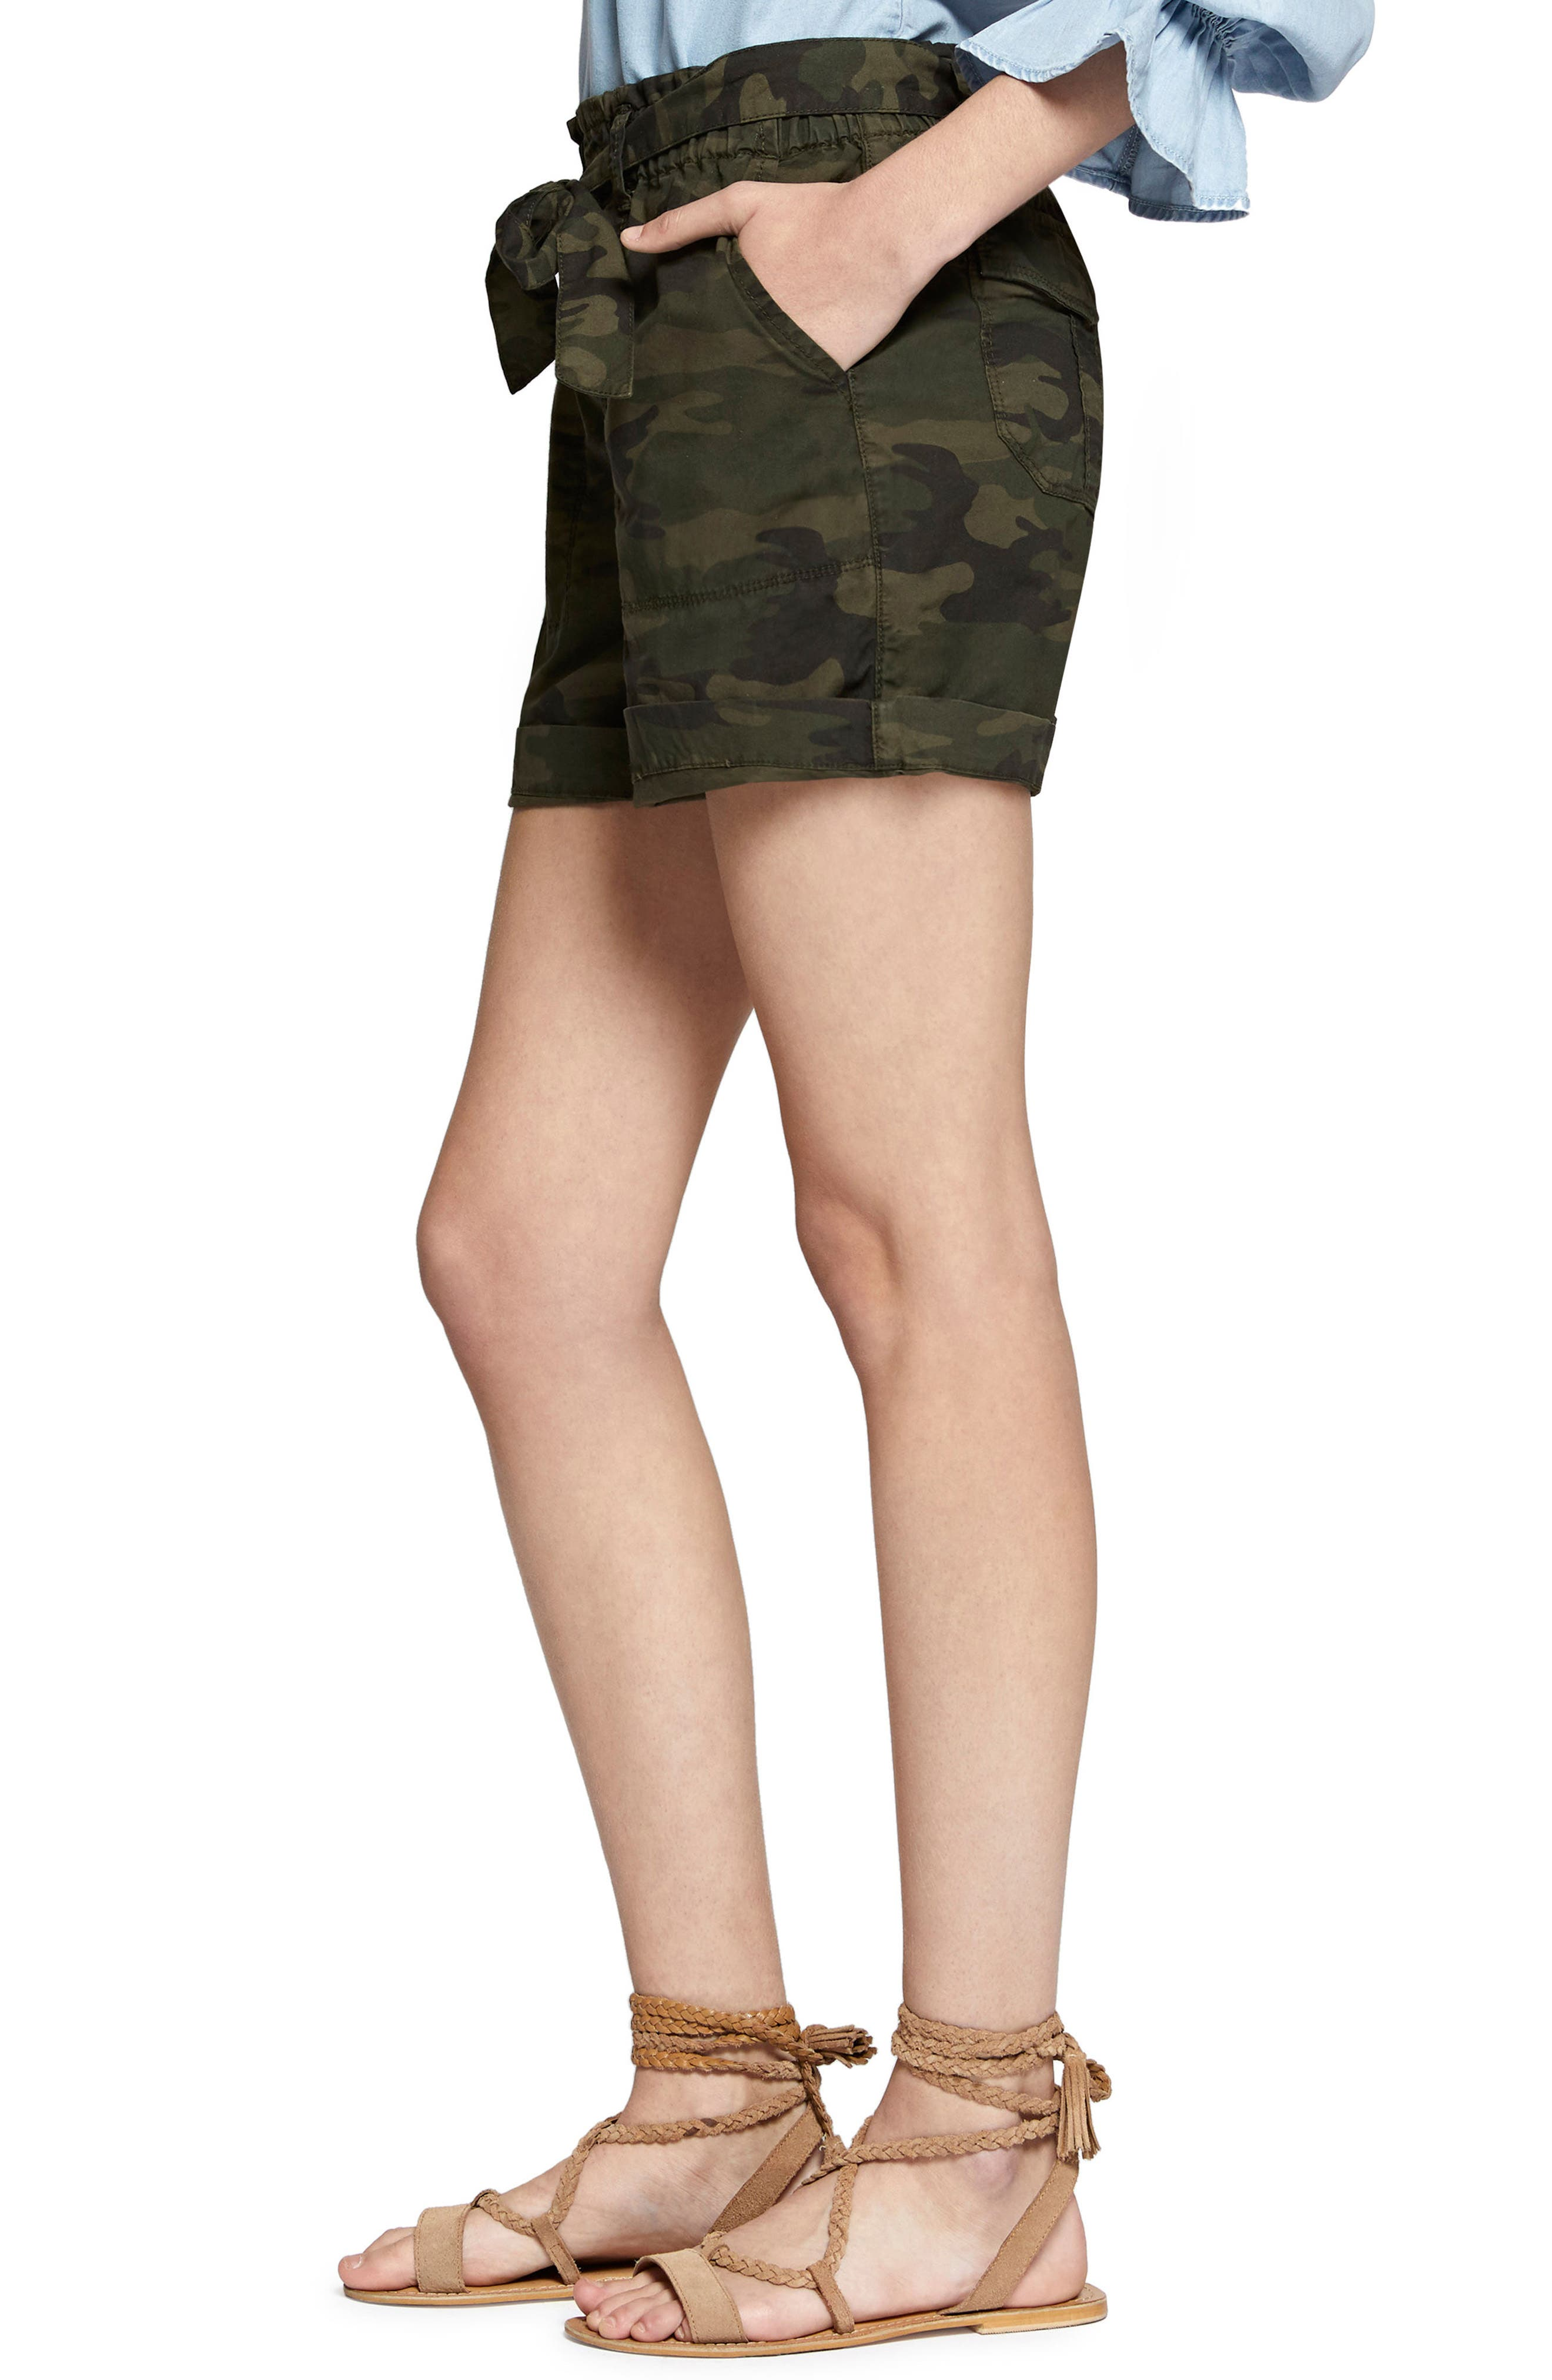 Daydreamer Stretch Cotton Camo Shorts,                             Alternate thumbnail 3, color,                             Mother Nature Camo